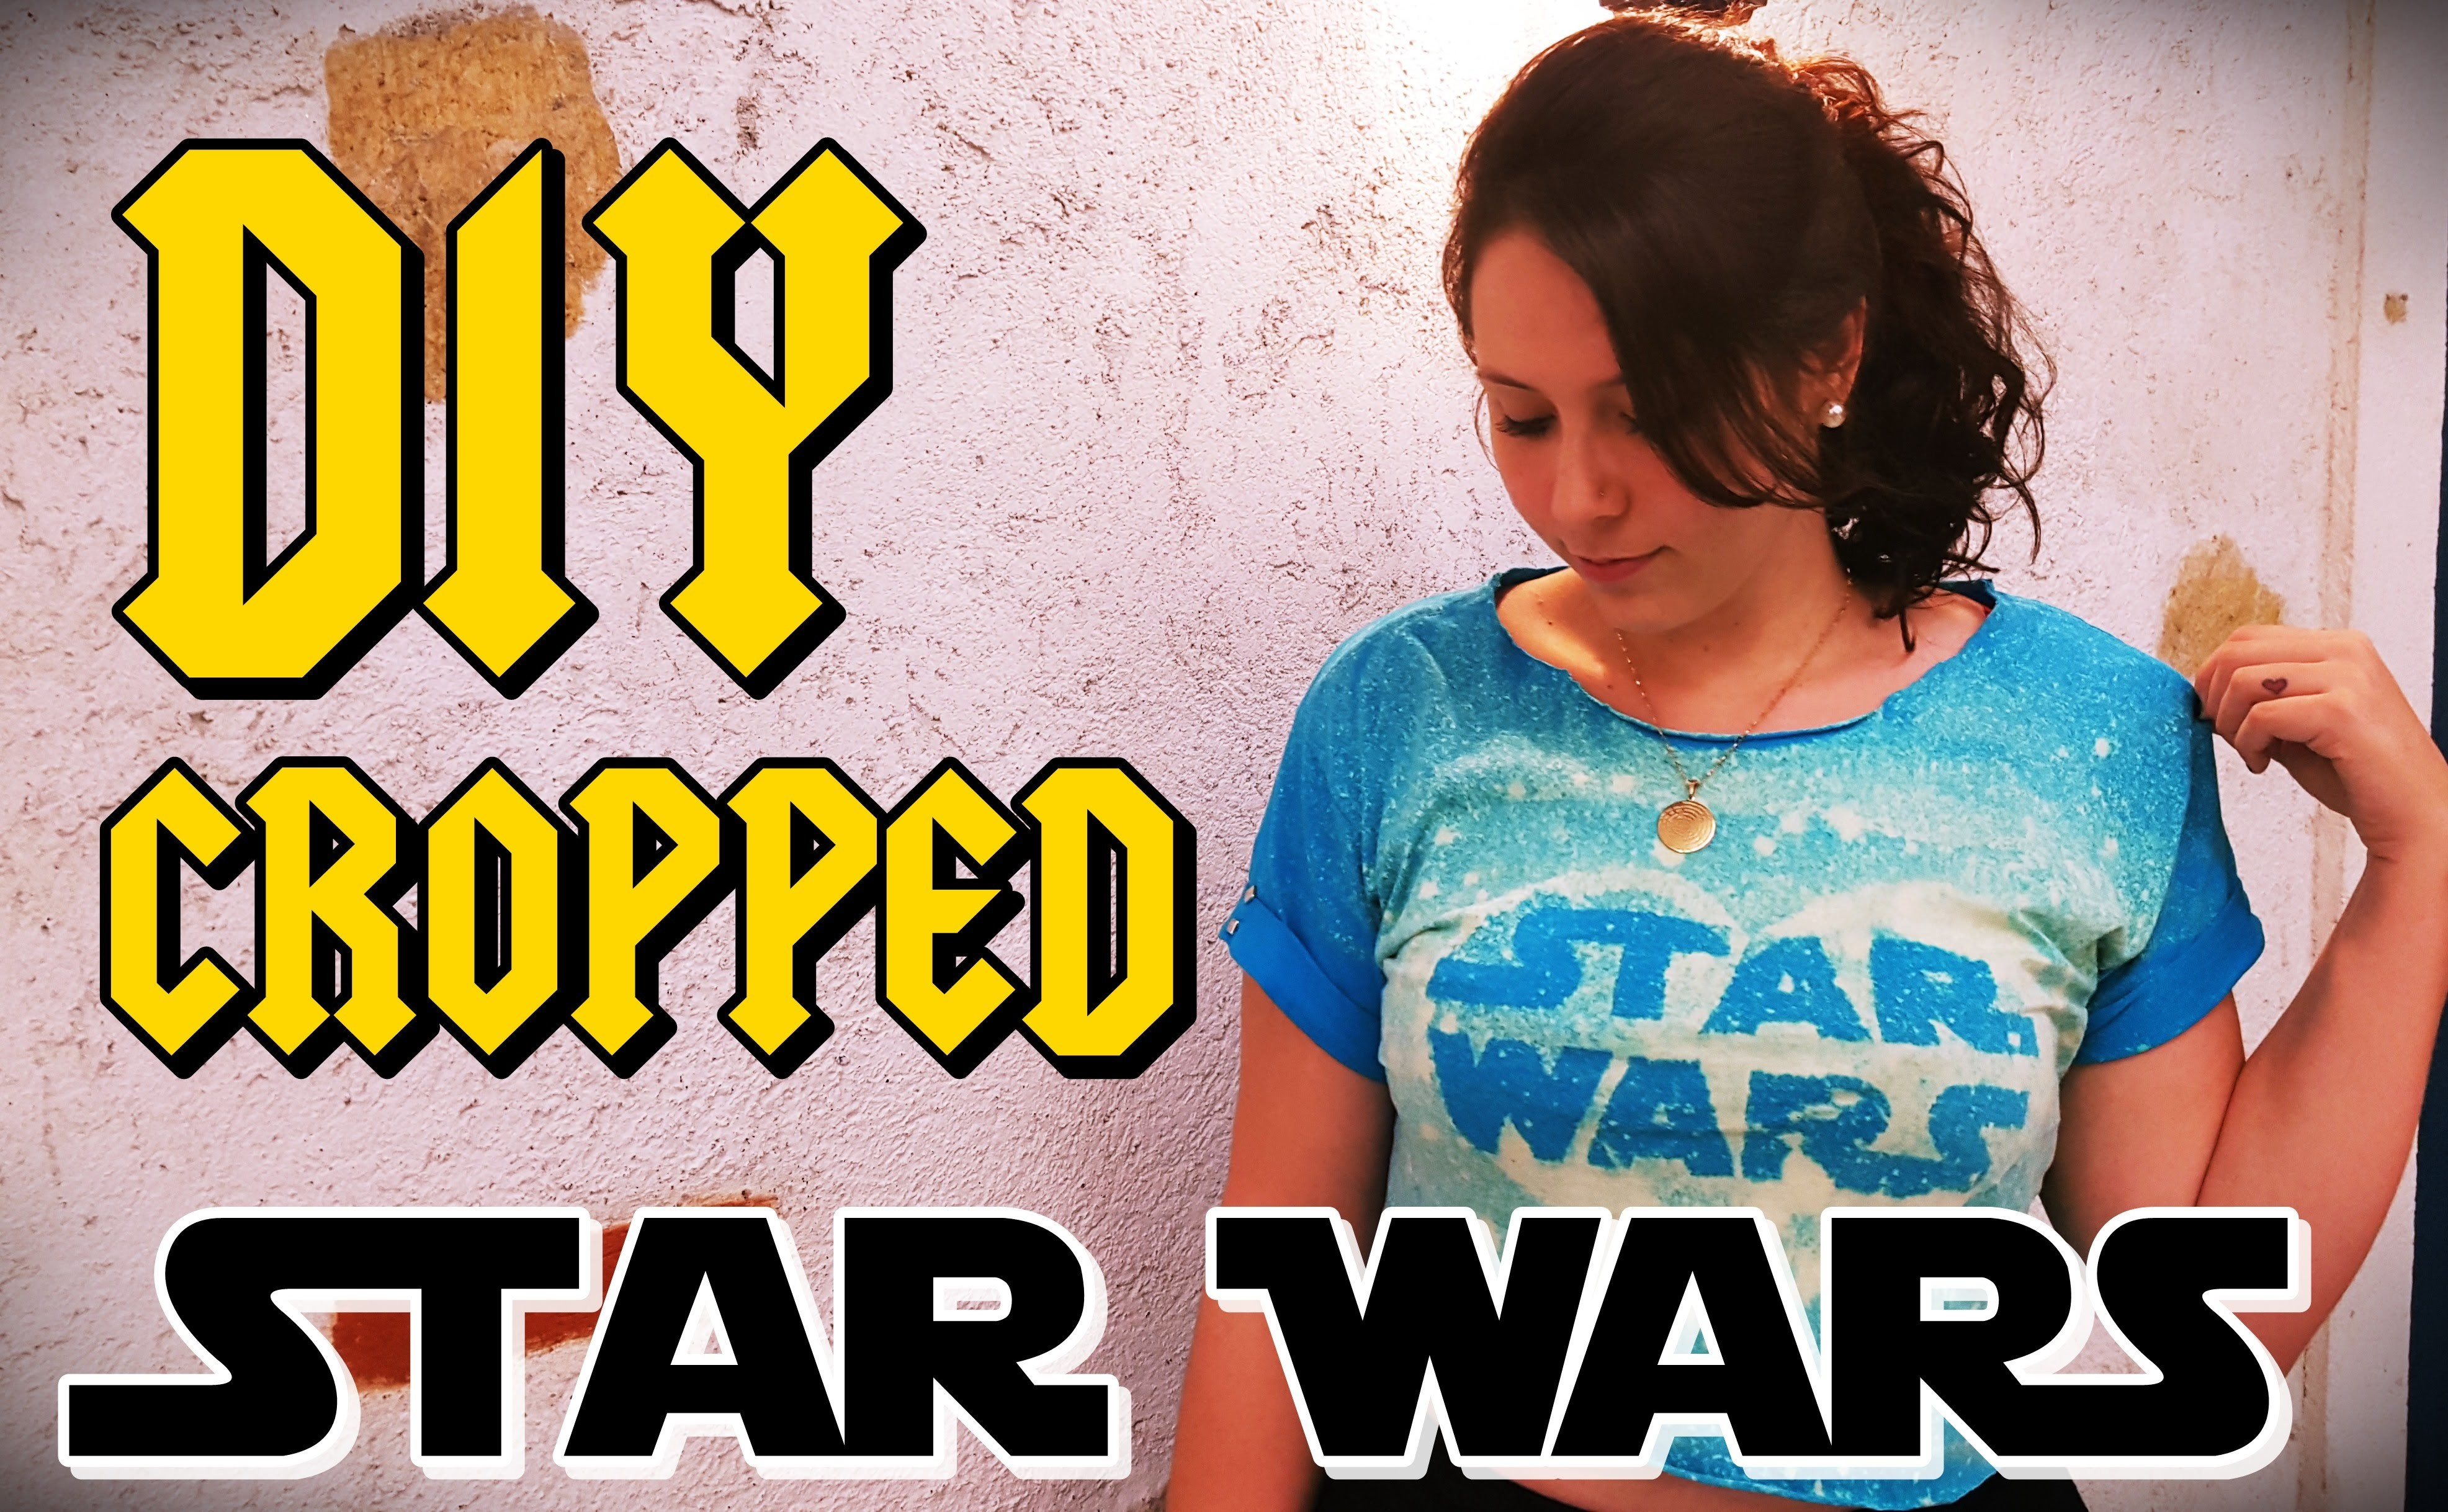 Star Wars (Estampando a camiseta) - DIY